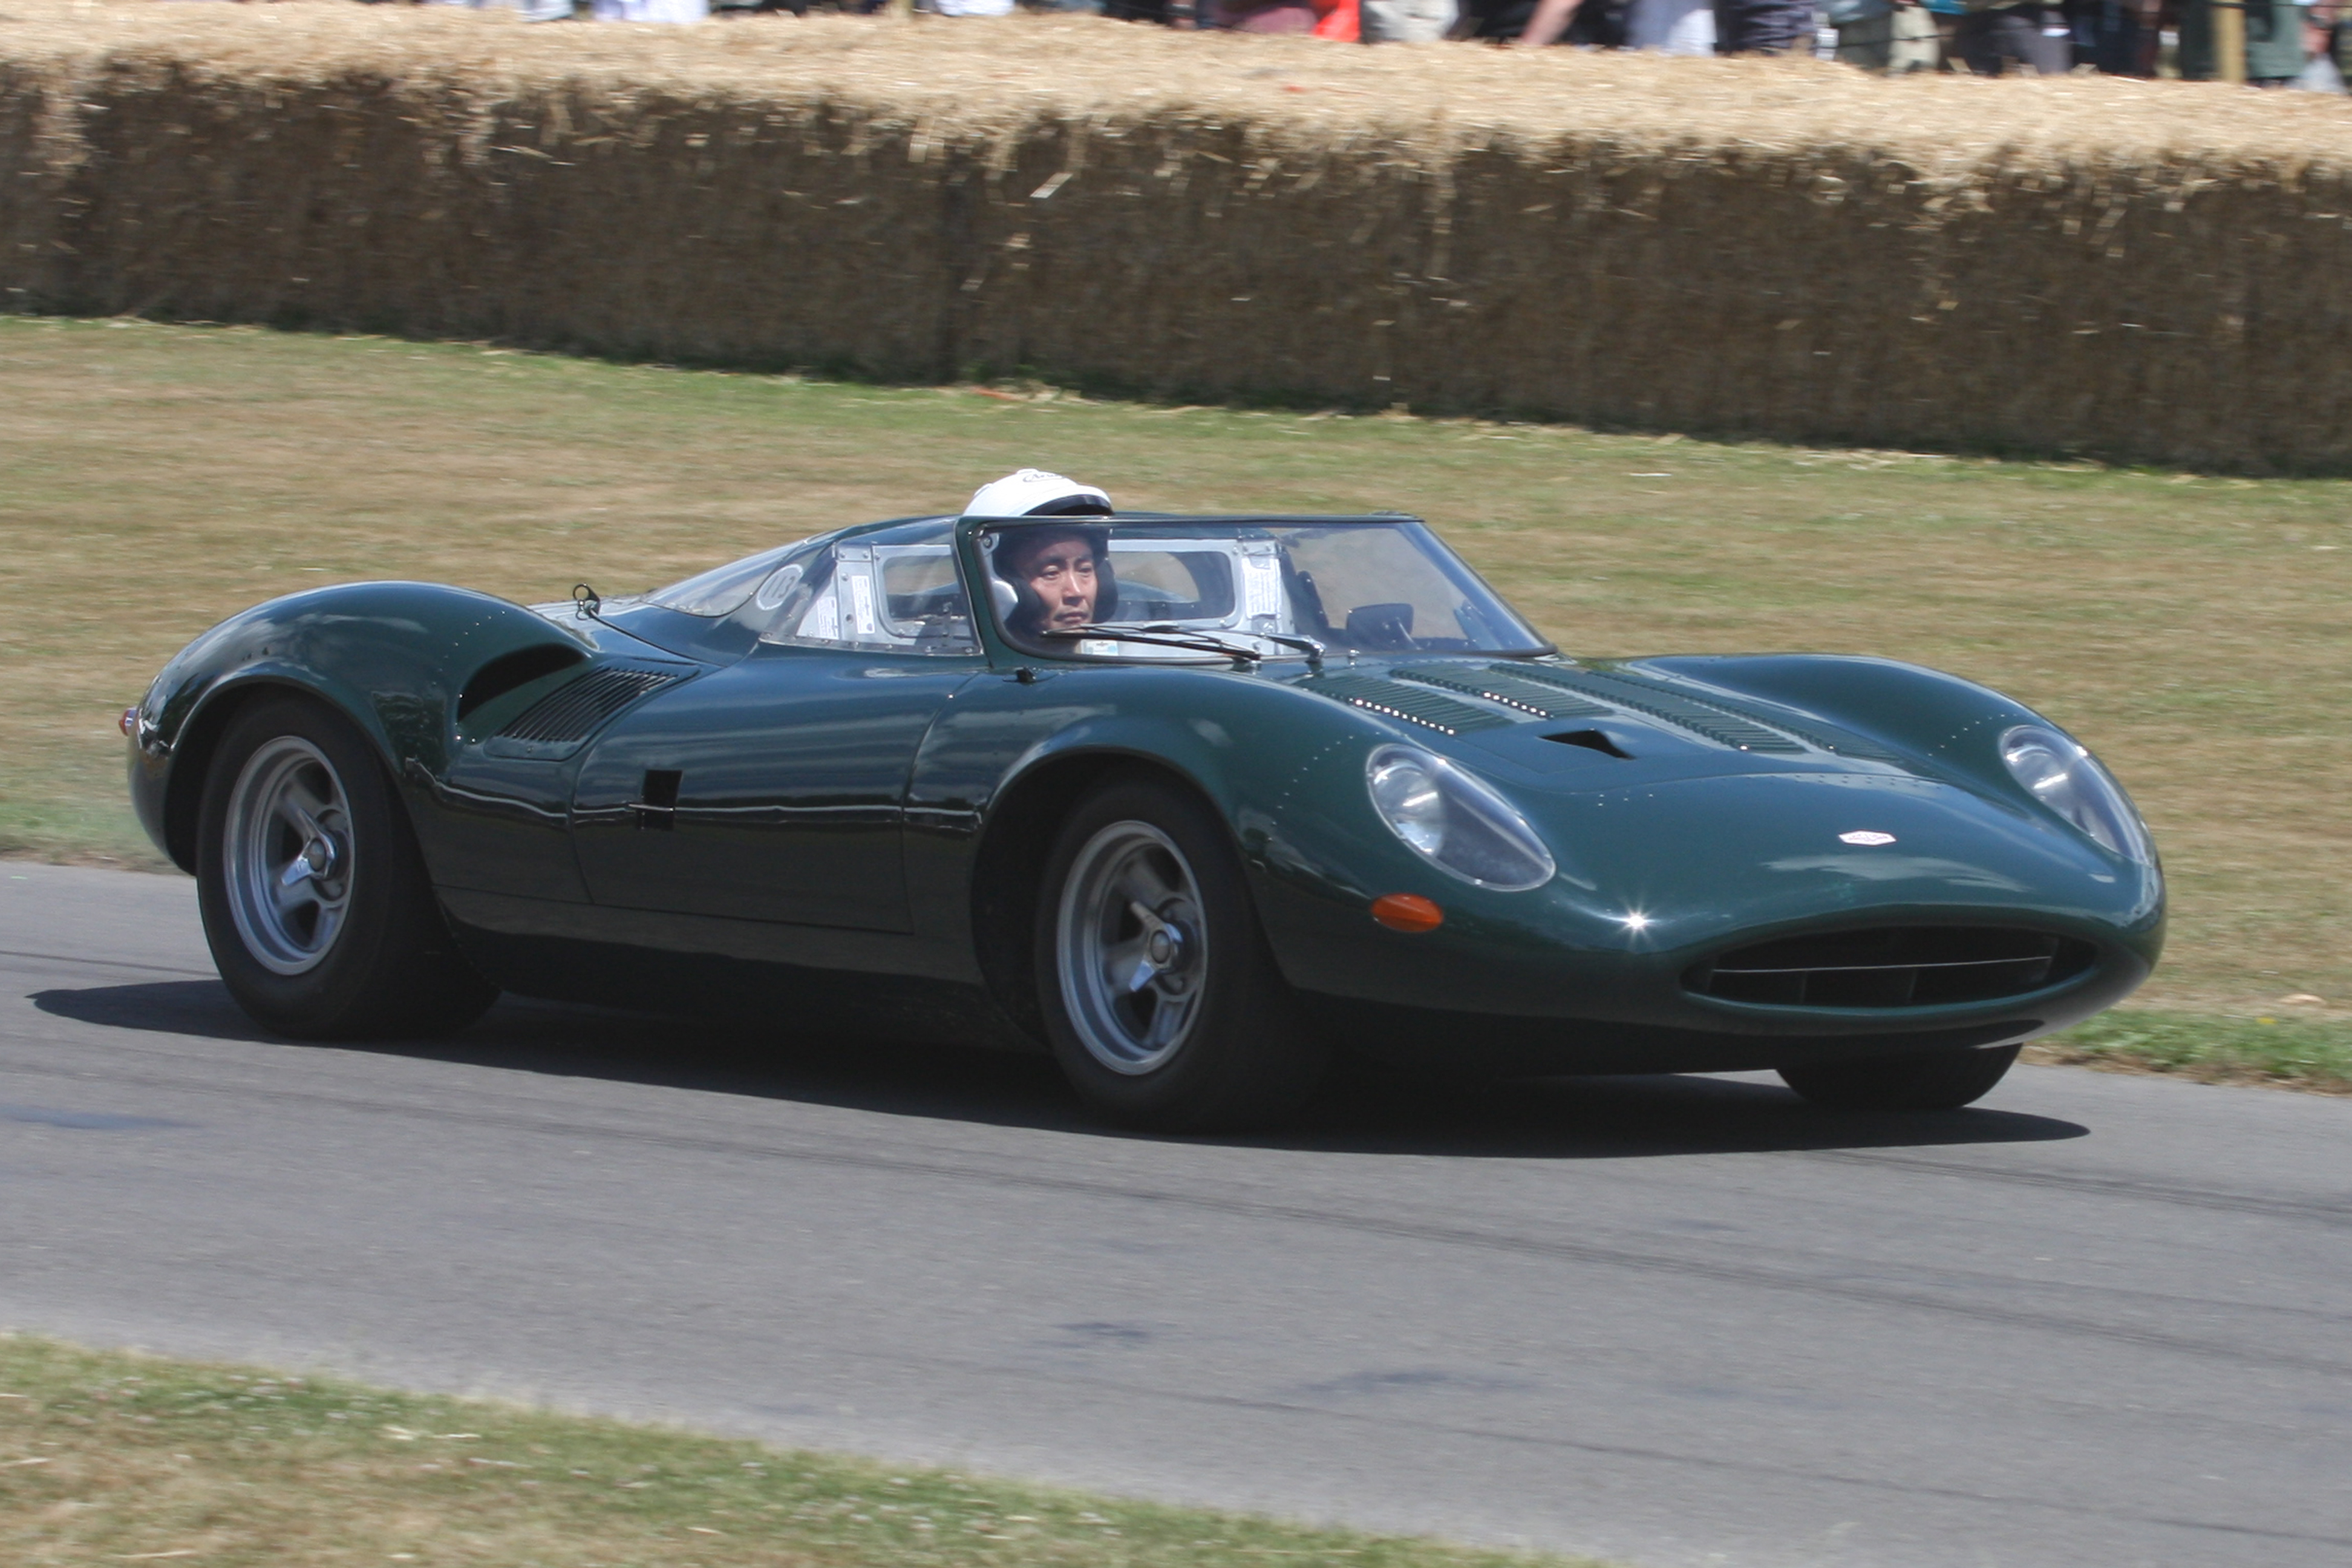 jaguar xj13 - wikipedia